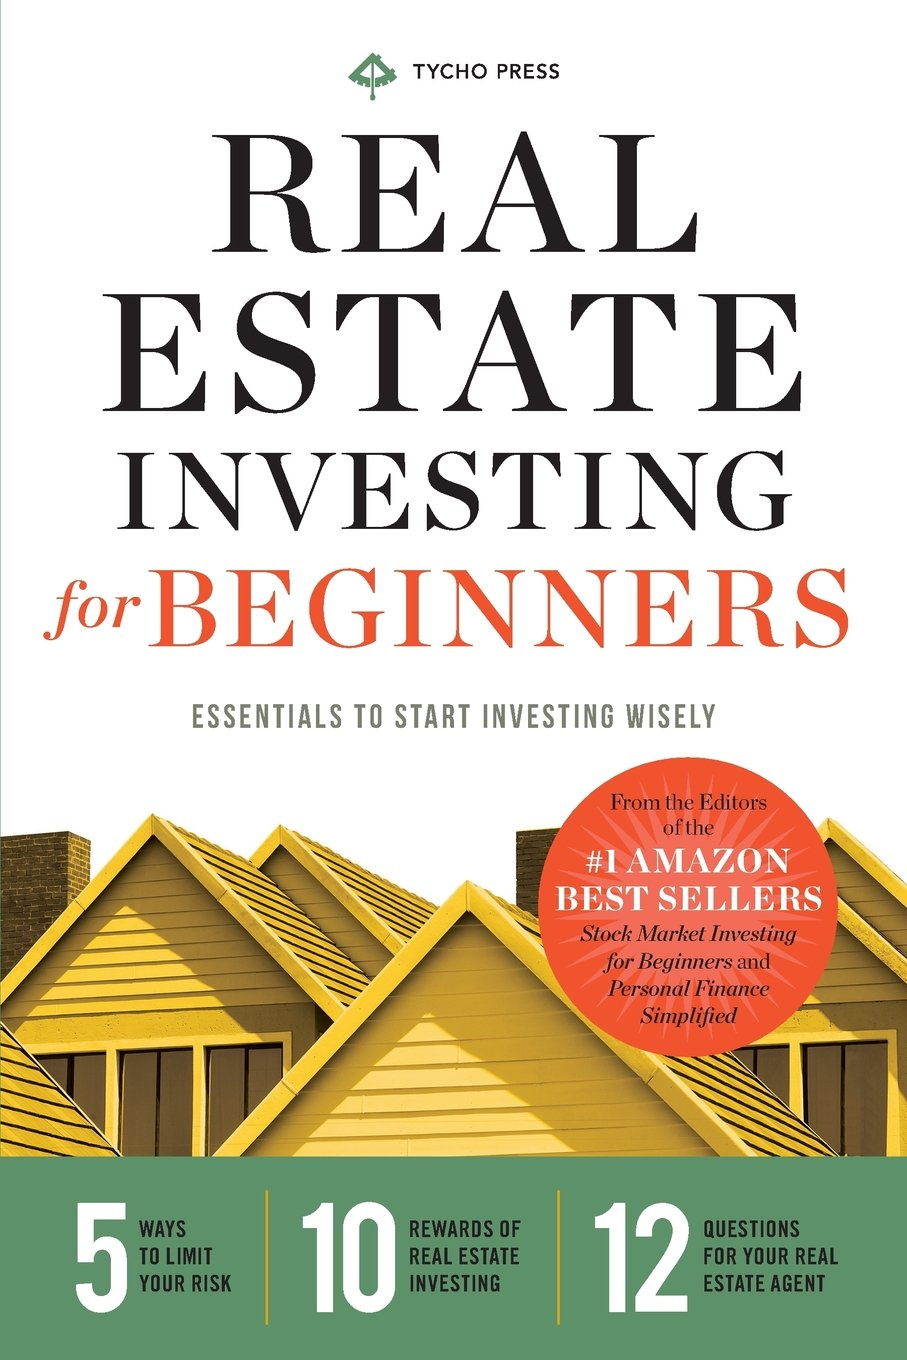 Real Estate Investing for Beginners: Essentials to Start Investing Wisely:  Tycho Press: 9781623153632: Amazon.com: Books